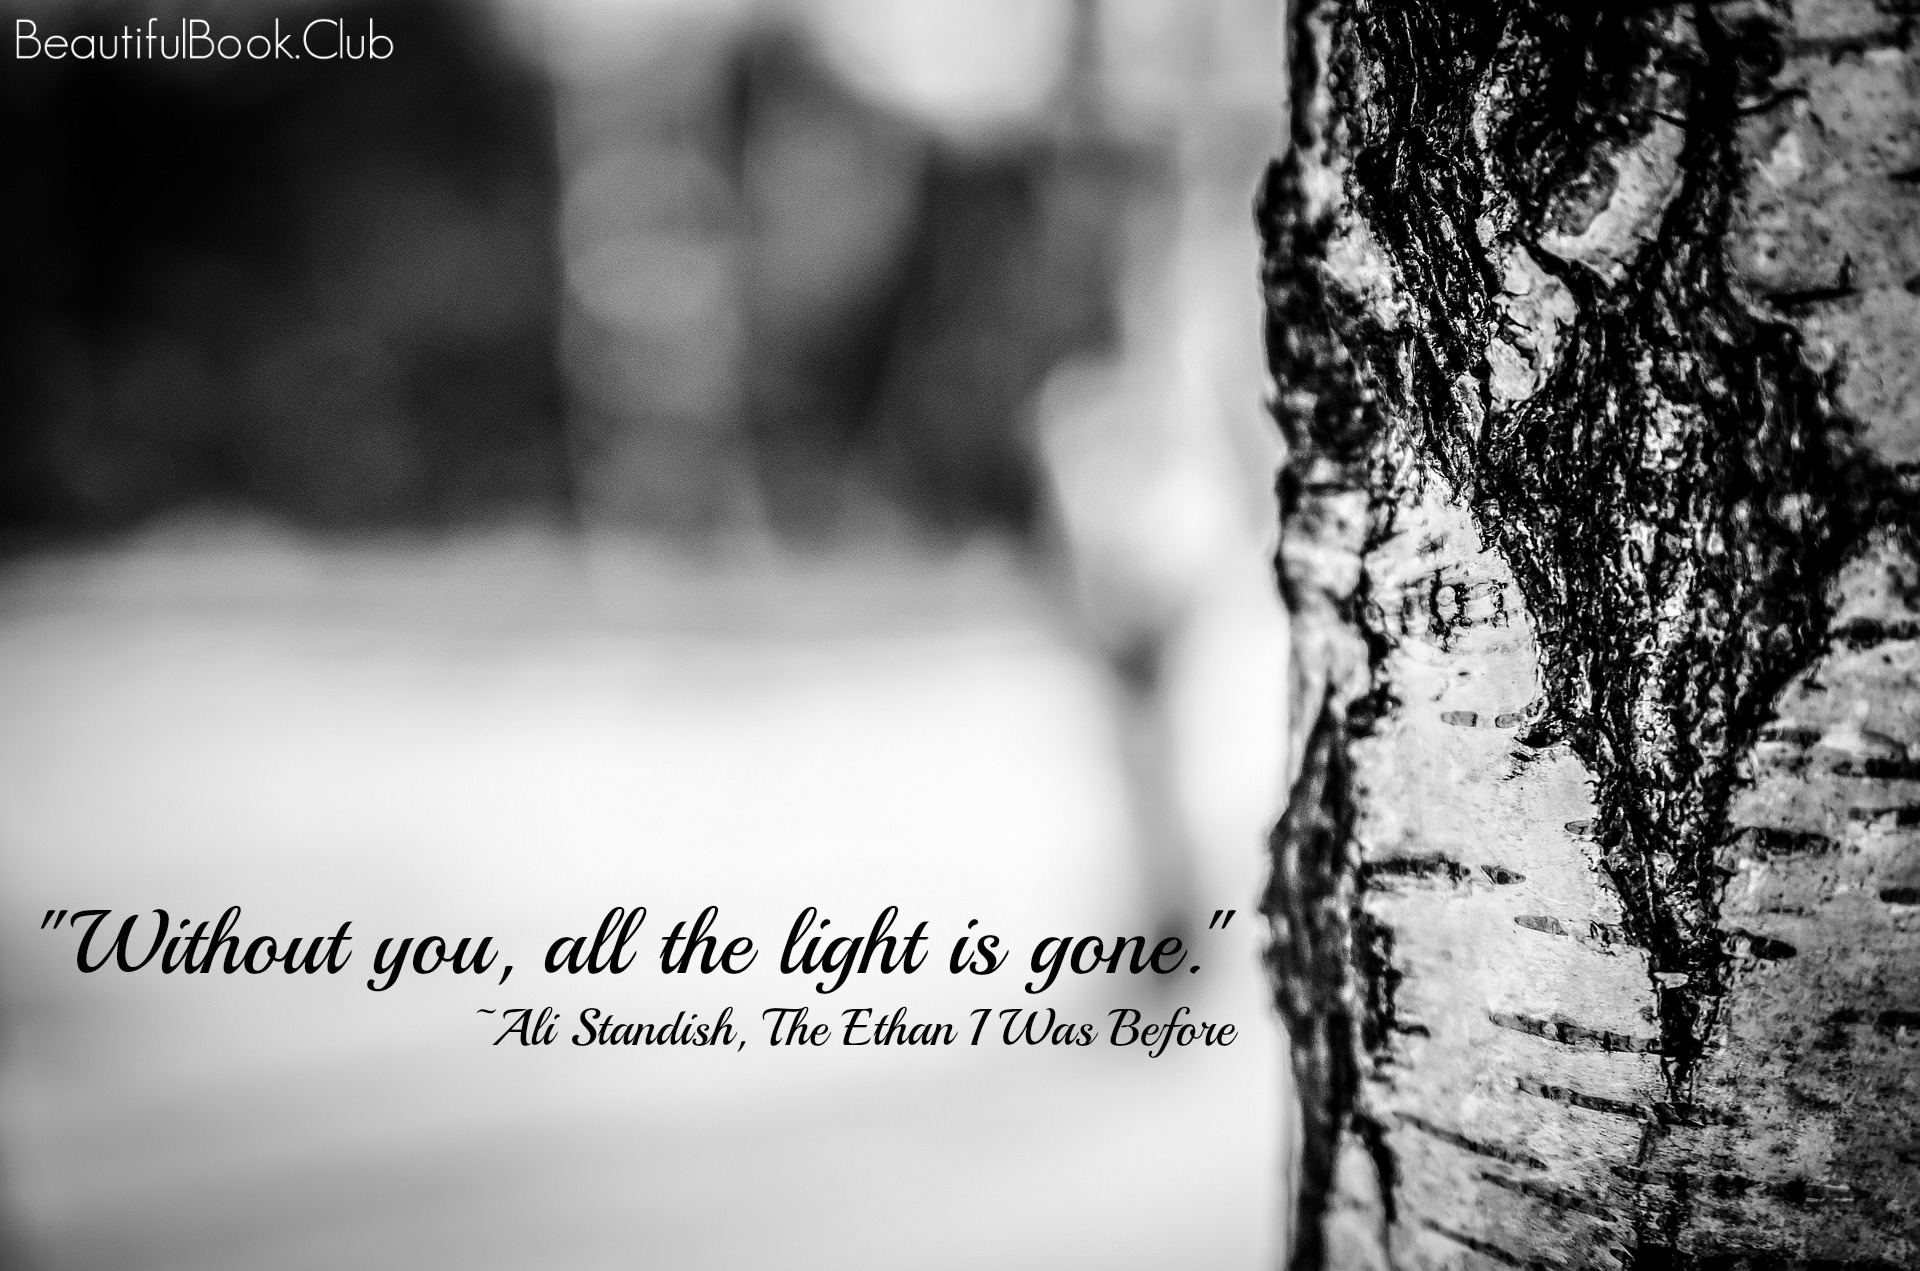 Without you, all the light is gone. -Ali Standish, Th Ethan I Was Before